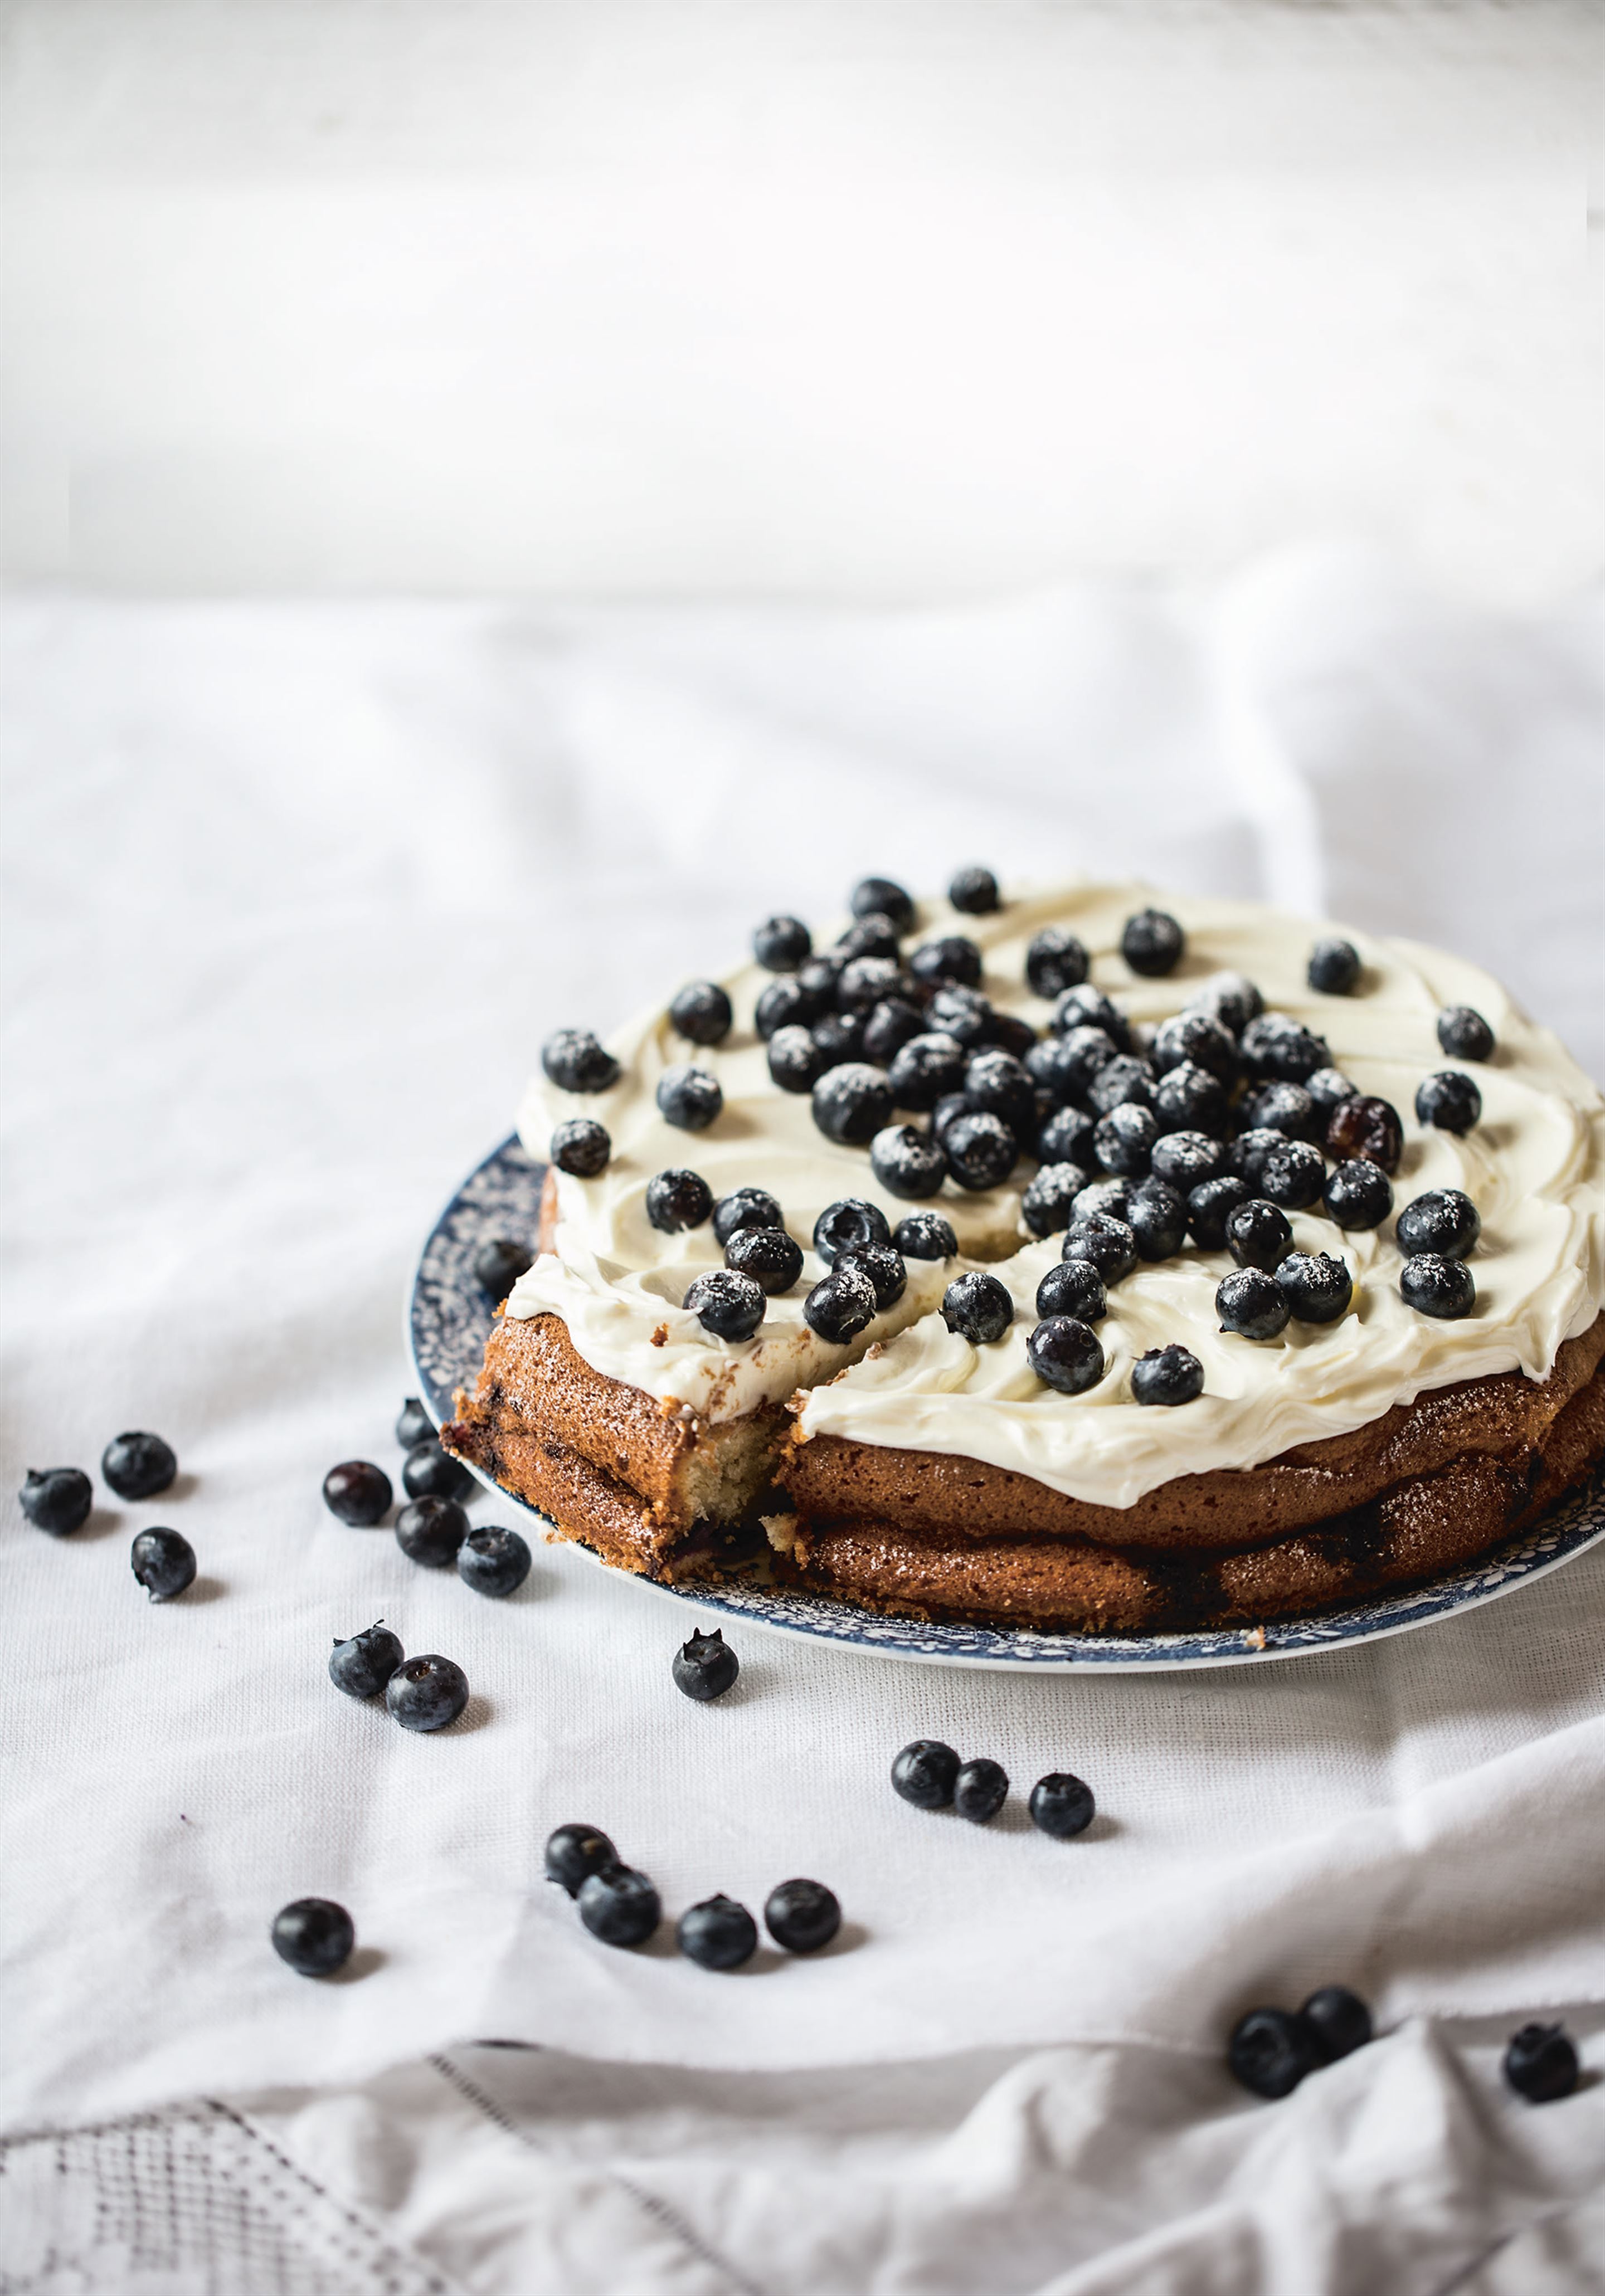 Lemon and blueberry cake